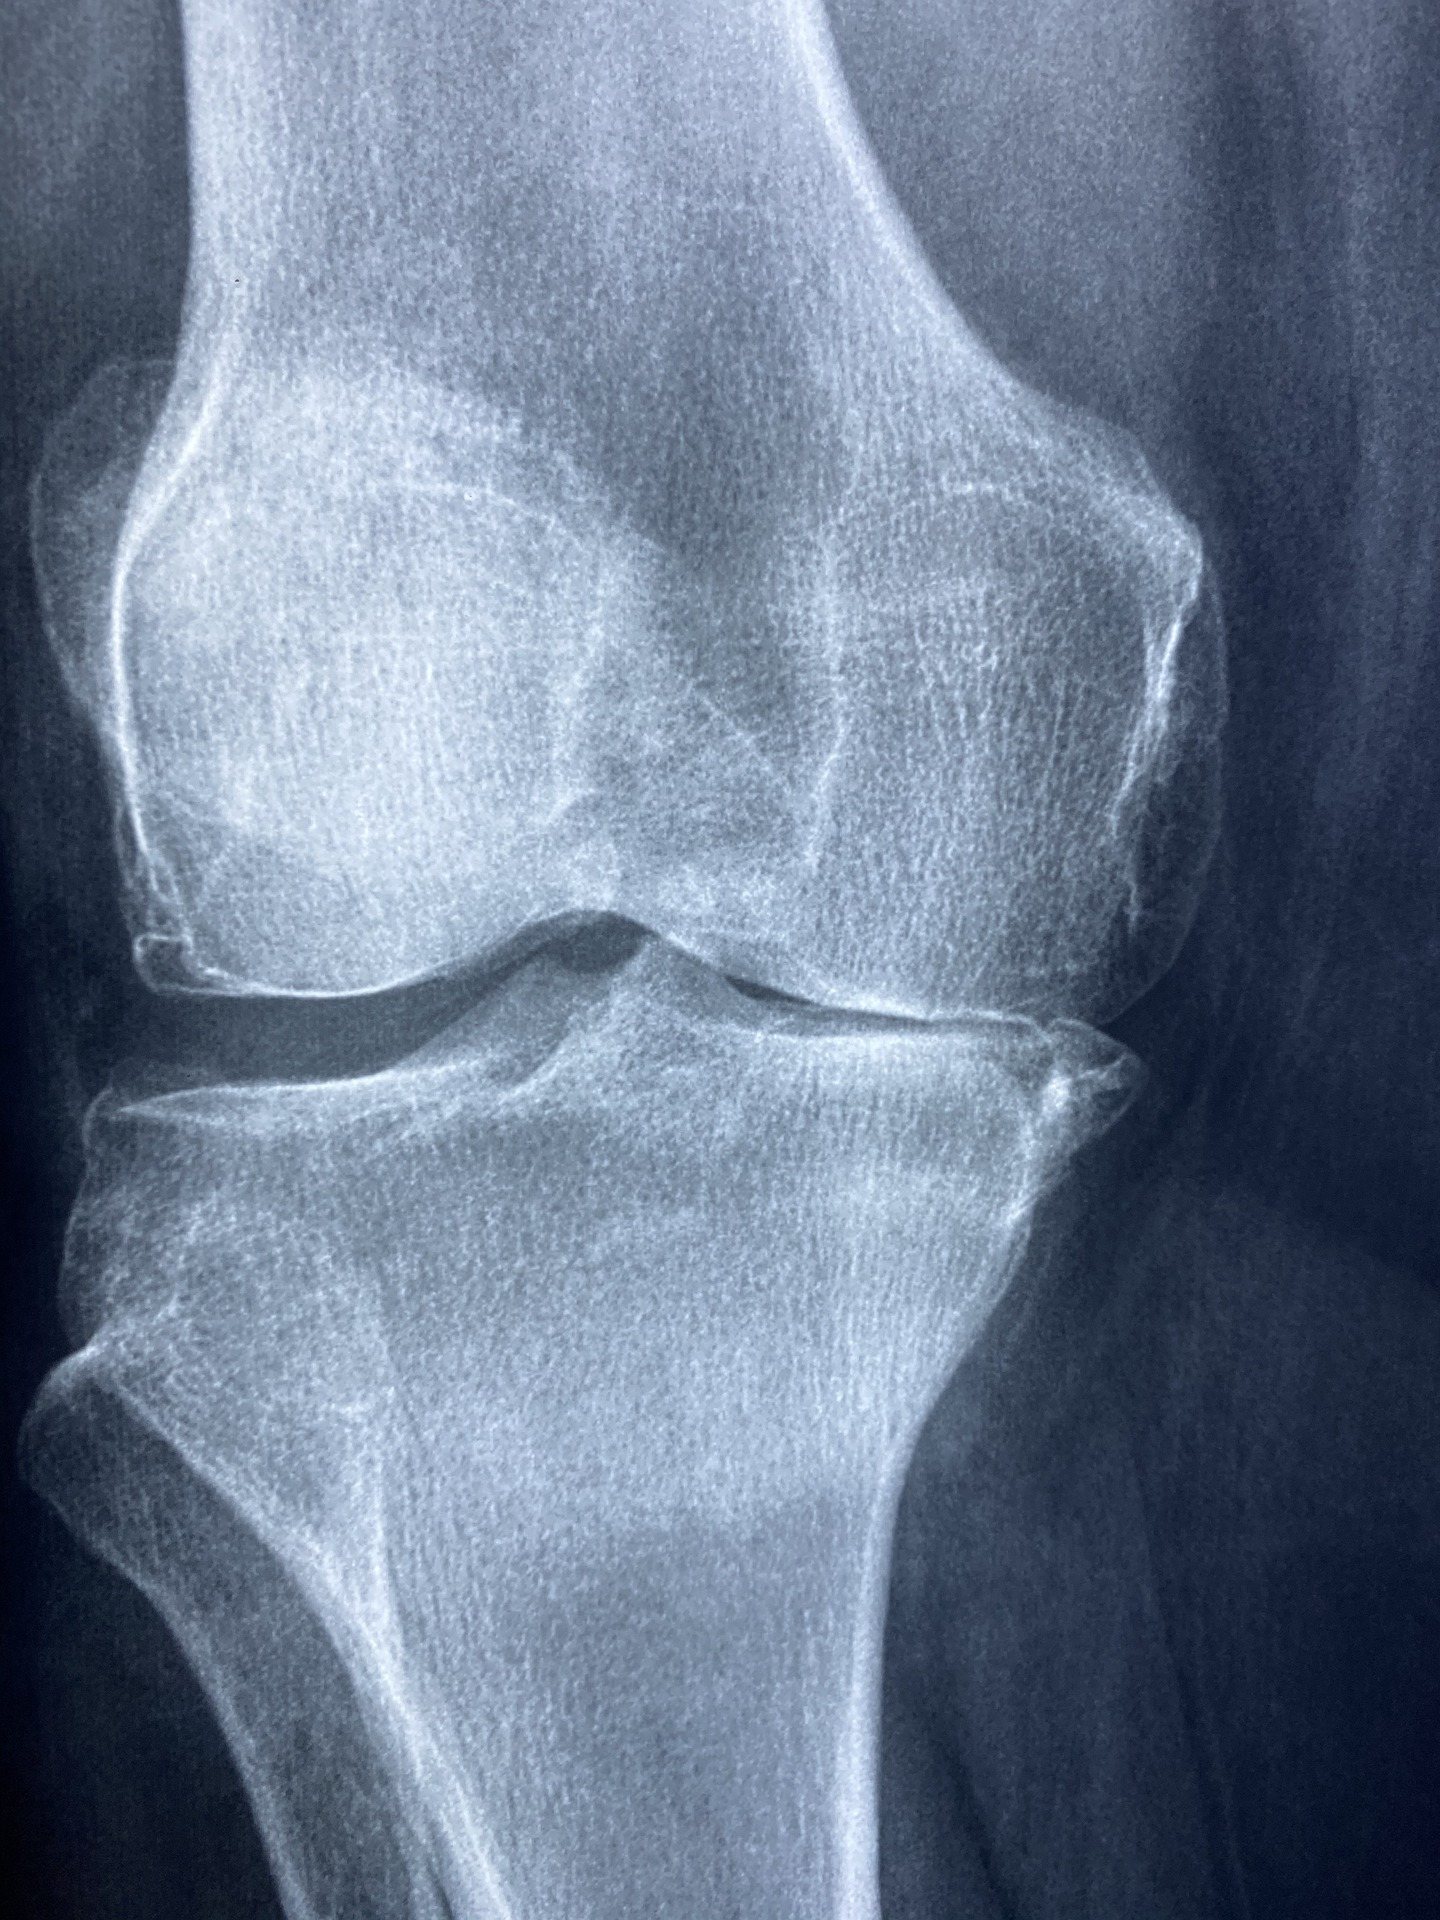 Osteoarthritis: A Brief Review of Integrative Treatment